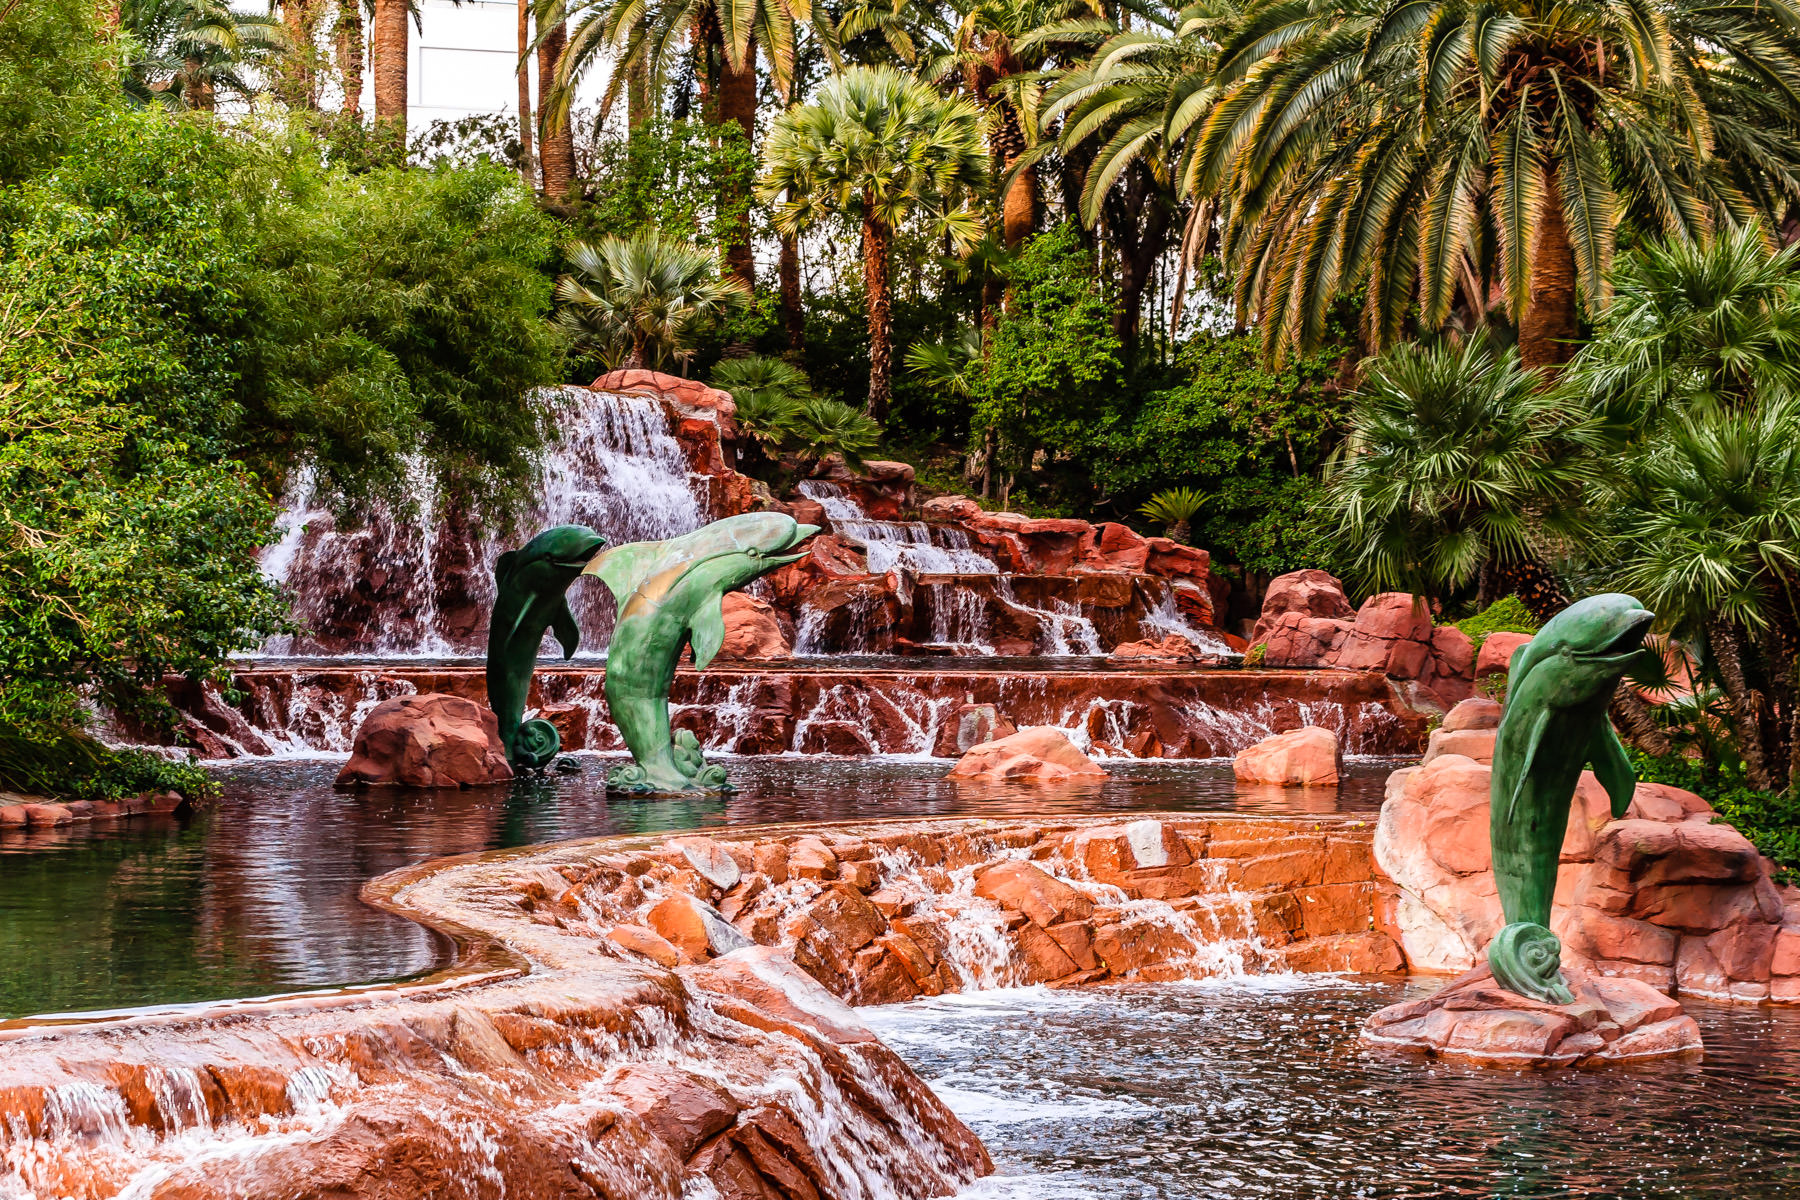 Dolphin statues in the waterfalls at The Mirage, Las Vegas.